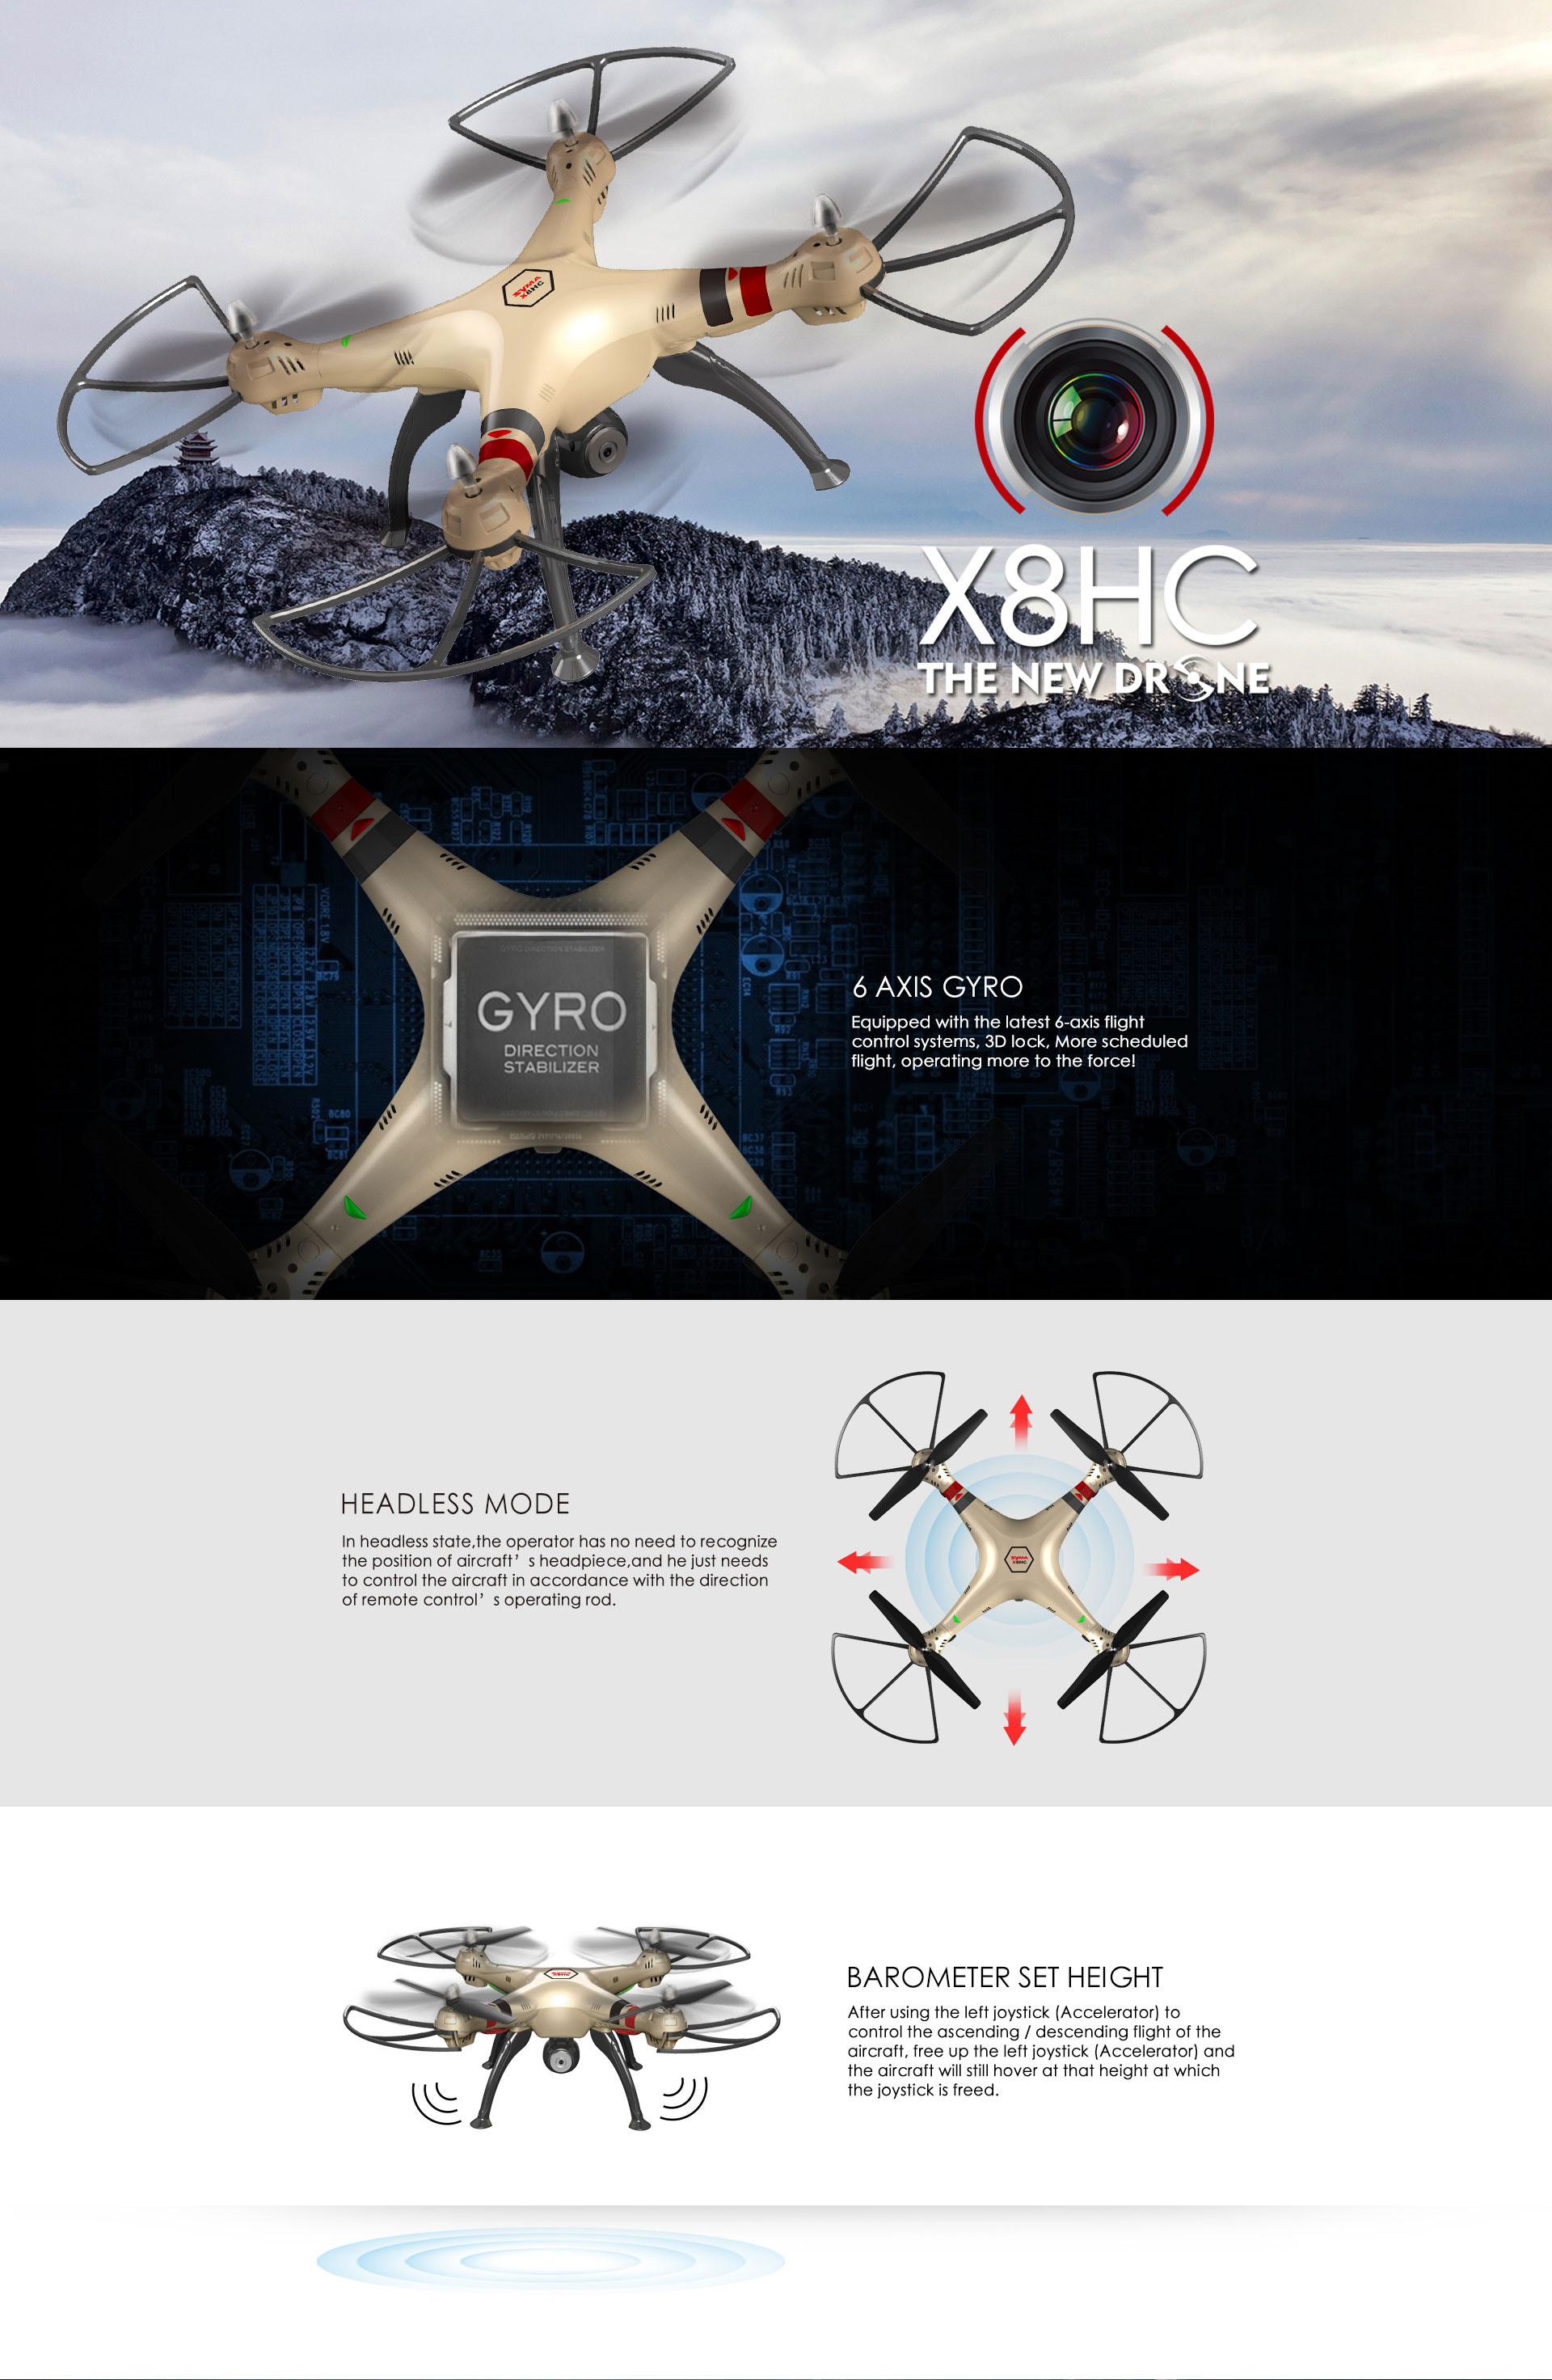 introducing-syma-x8hc-drone-quadcopter-post-hobbytalks-sri-lanka